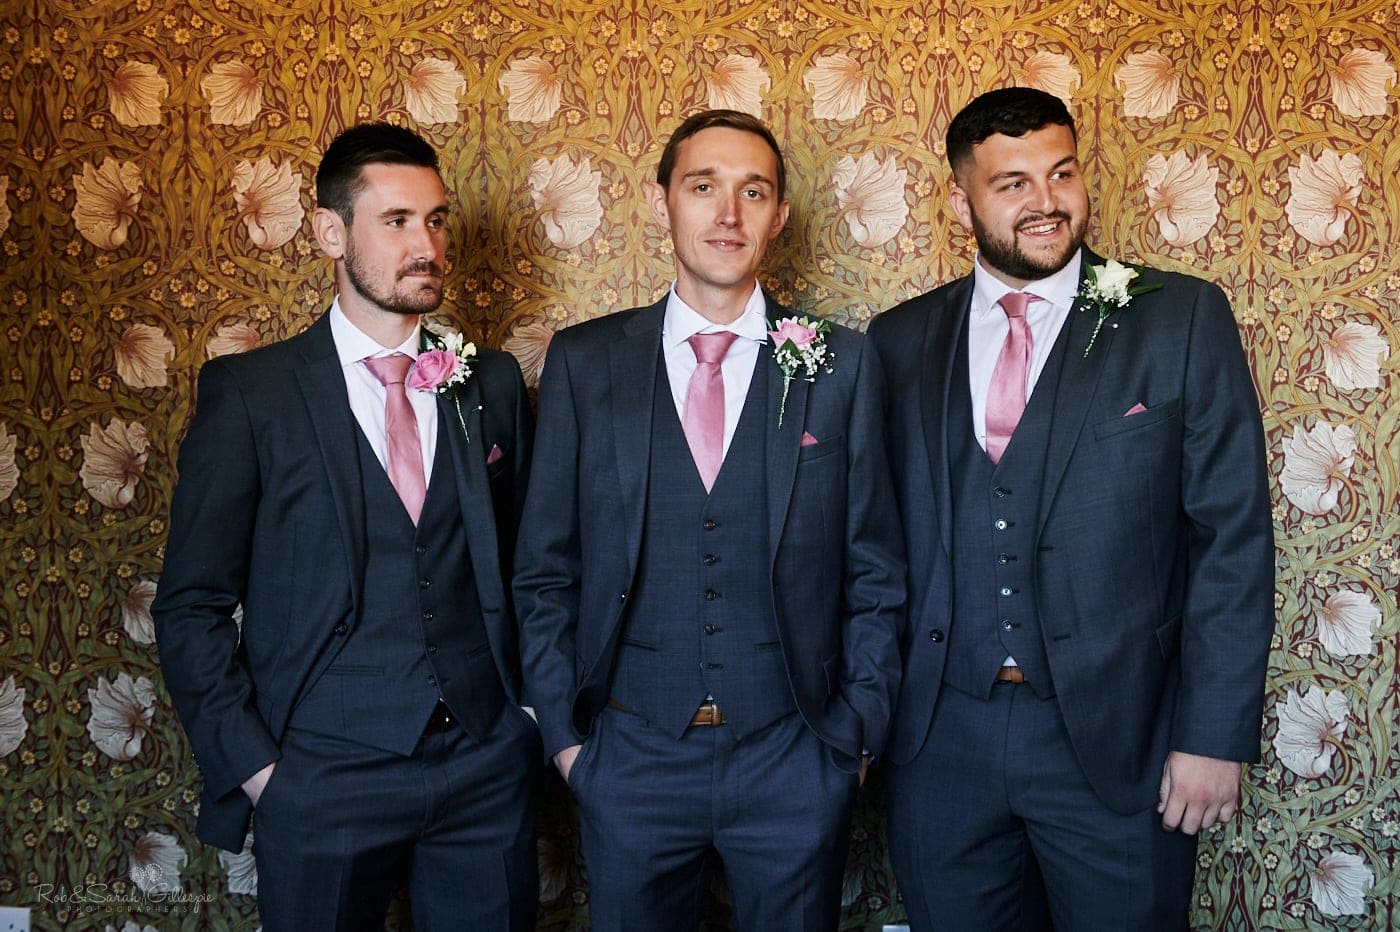 Group photo of groom and groomsmen in Pimpernel Suite at Pendrell Hall